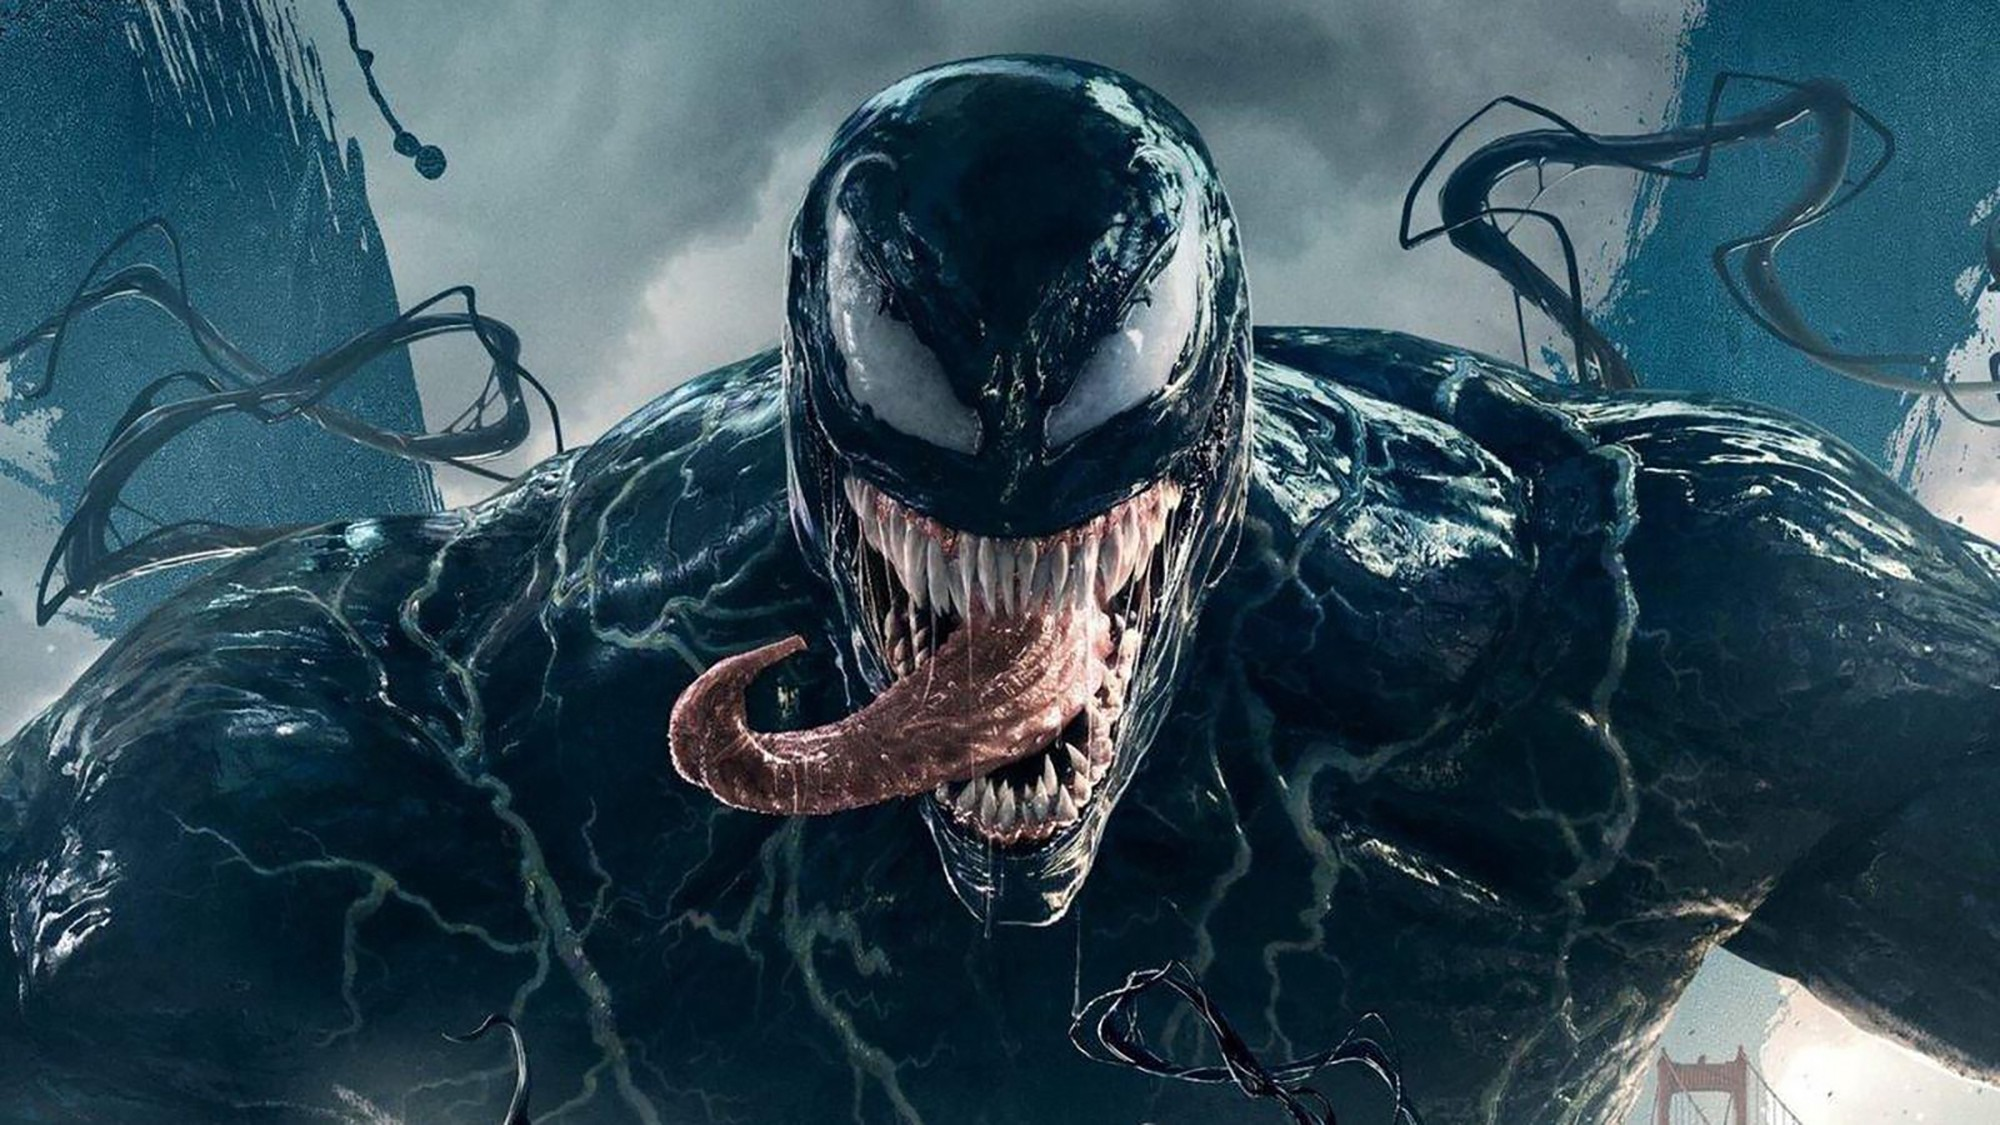 64bab0444 VENOM Is Not The Movie You Expect It To Be (And That's A Good  Thing!)[Review]